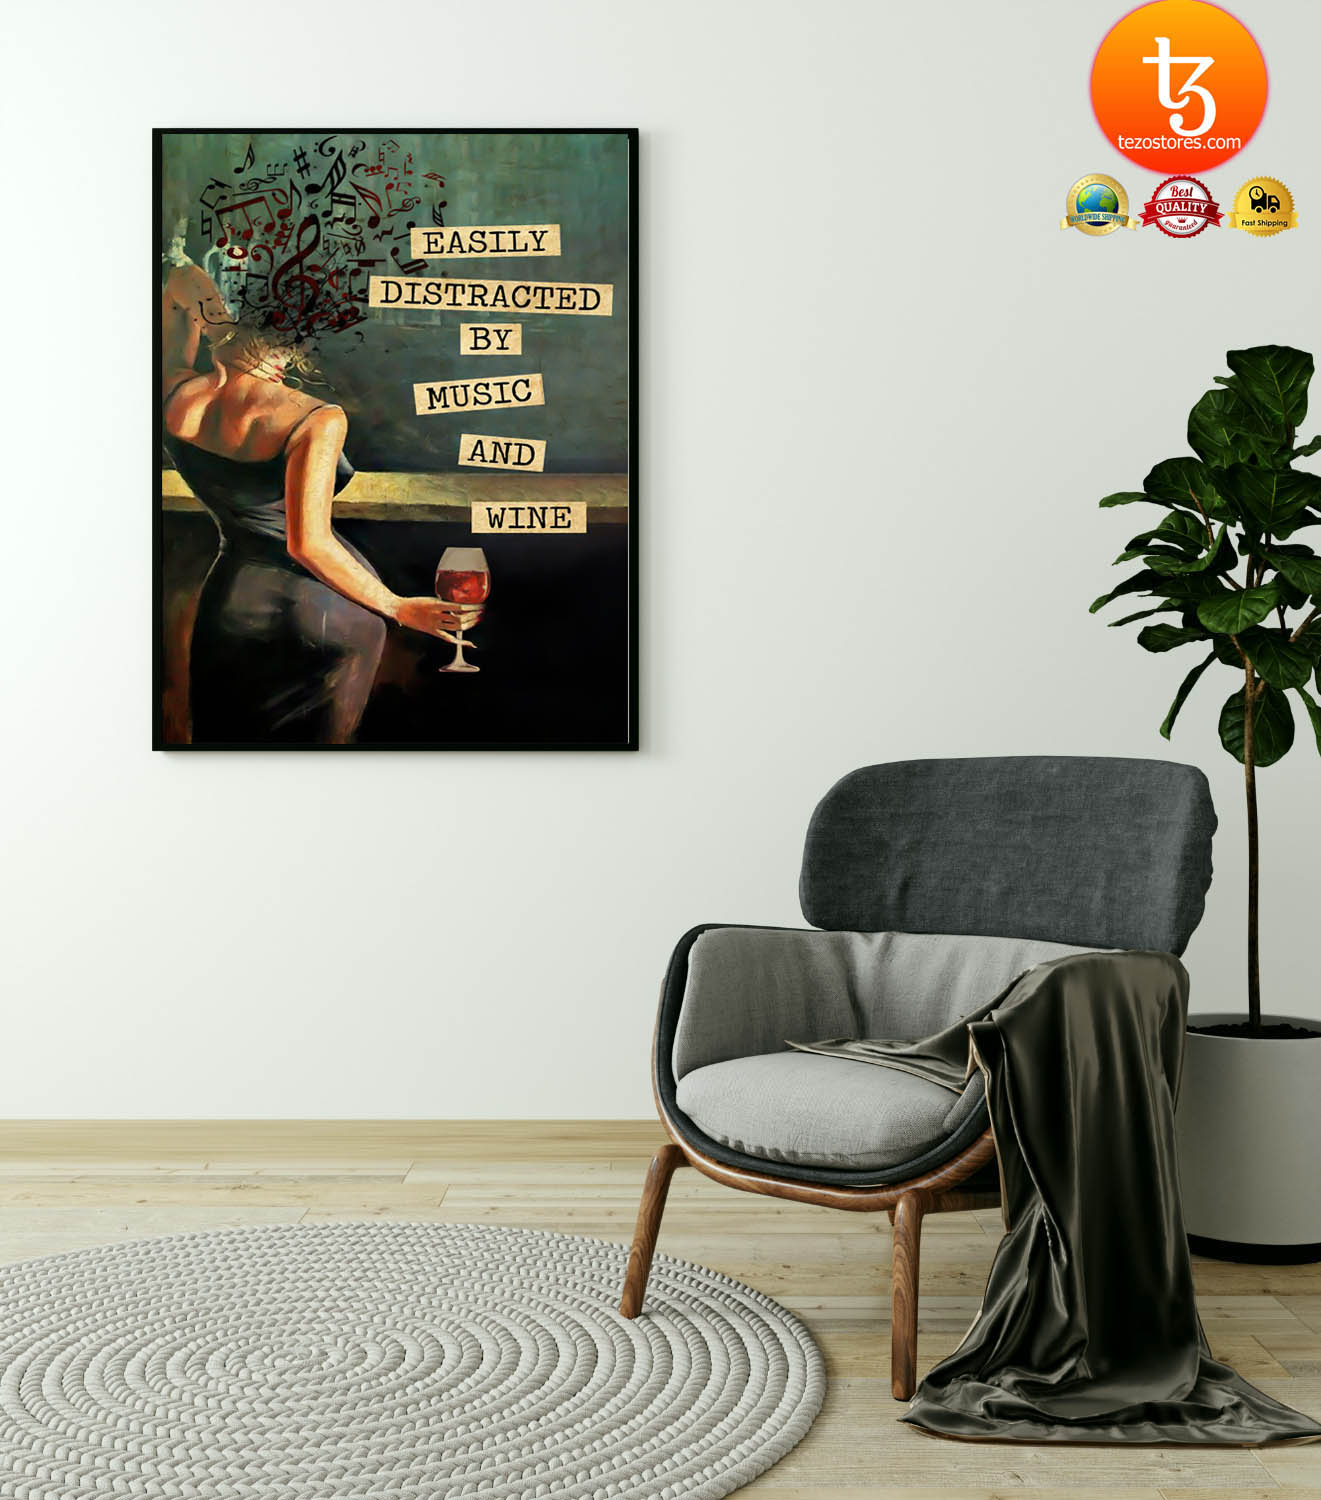 Vintage easily distracted by music and wine poster 21